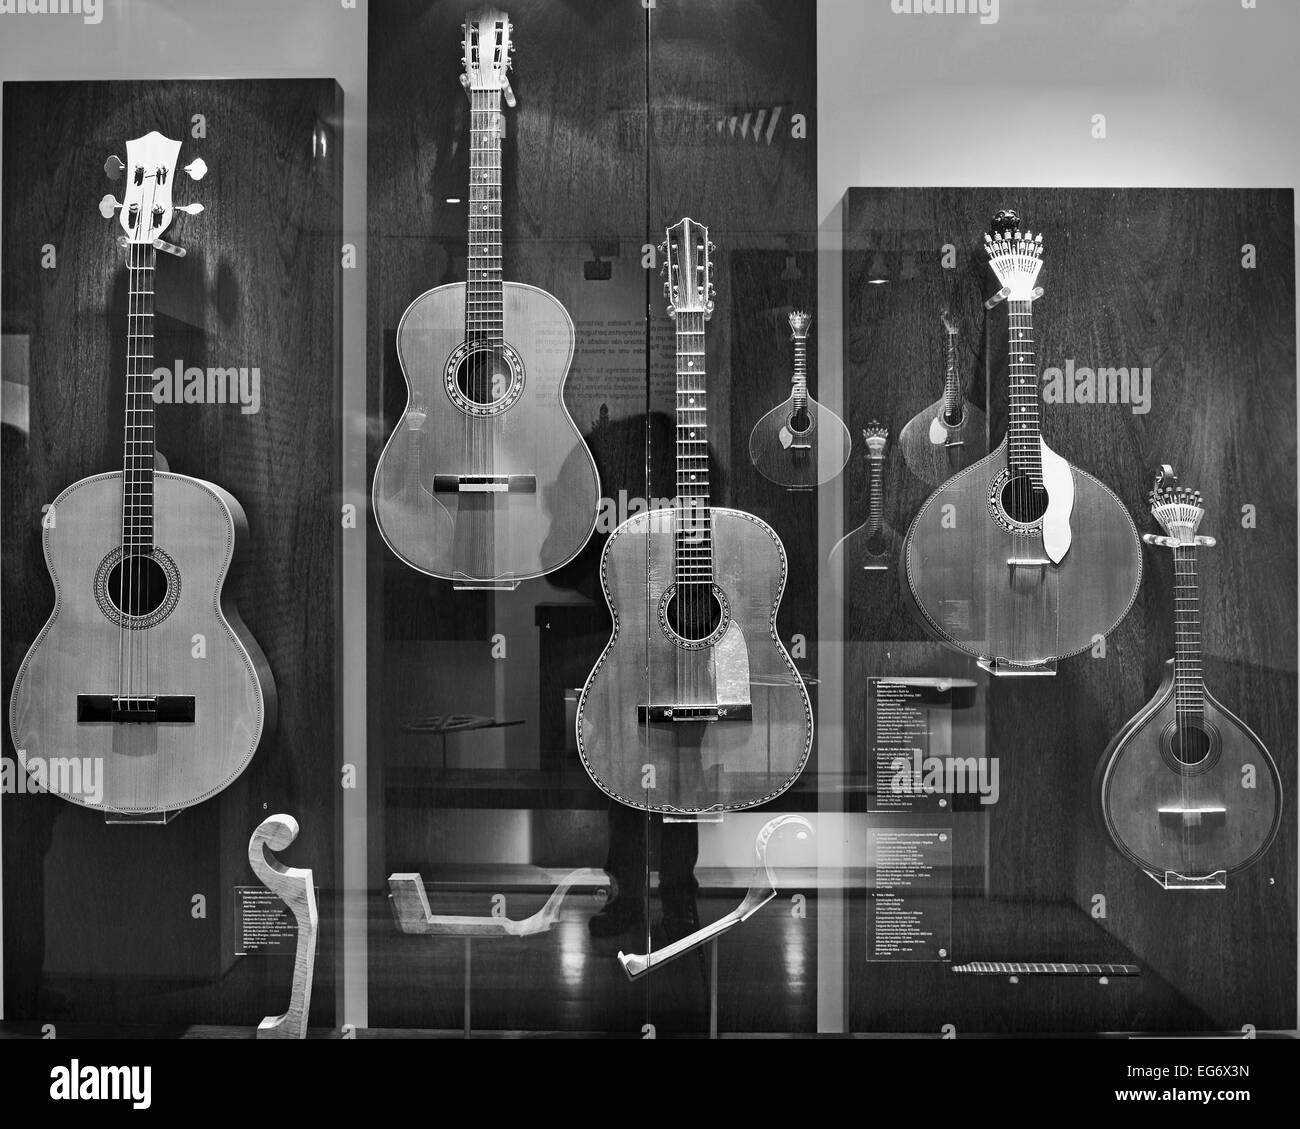 Portugal, Lisbon: Exposition of models of Fado guitars  in the Museum of Fado as black and white version - Stock Image